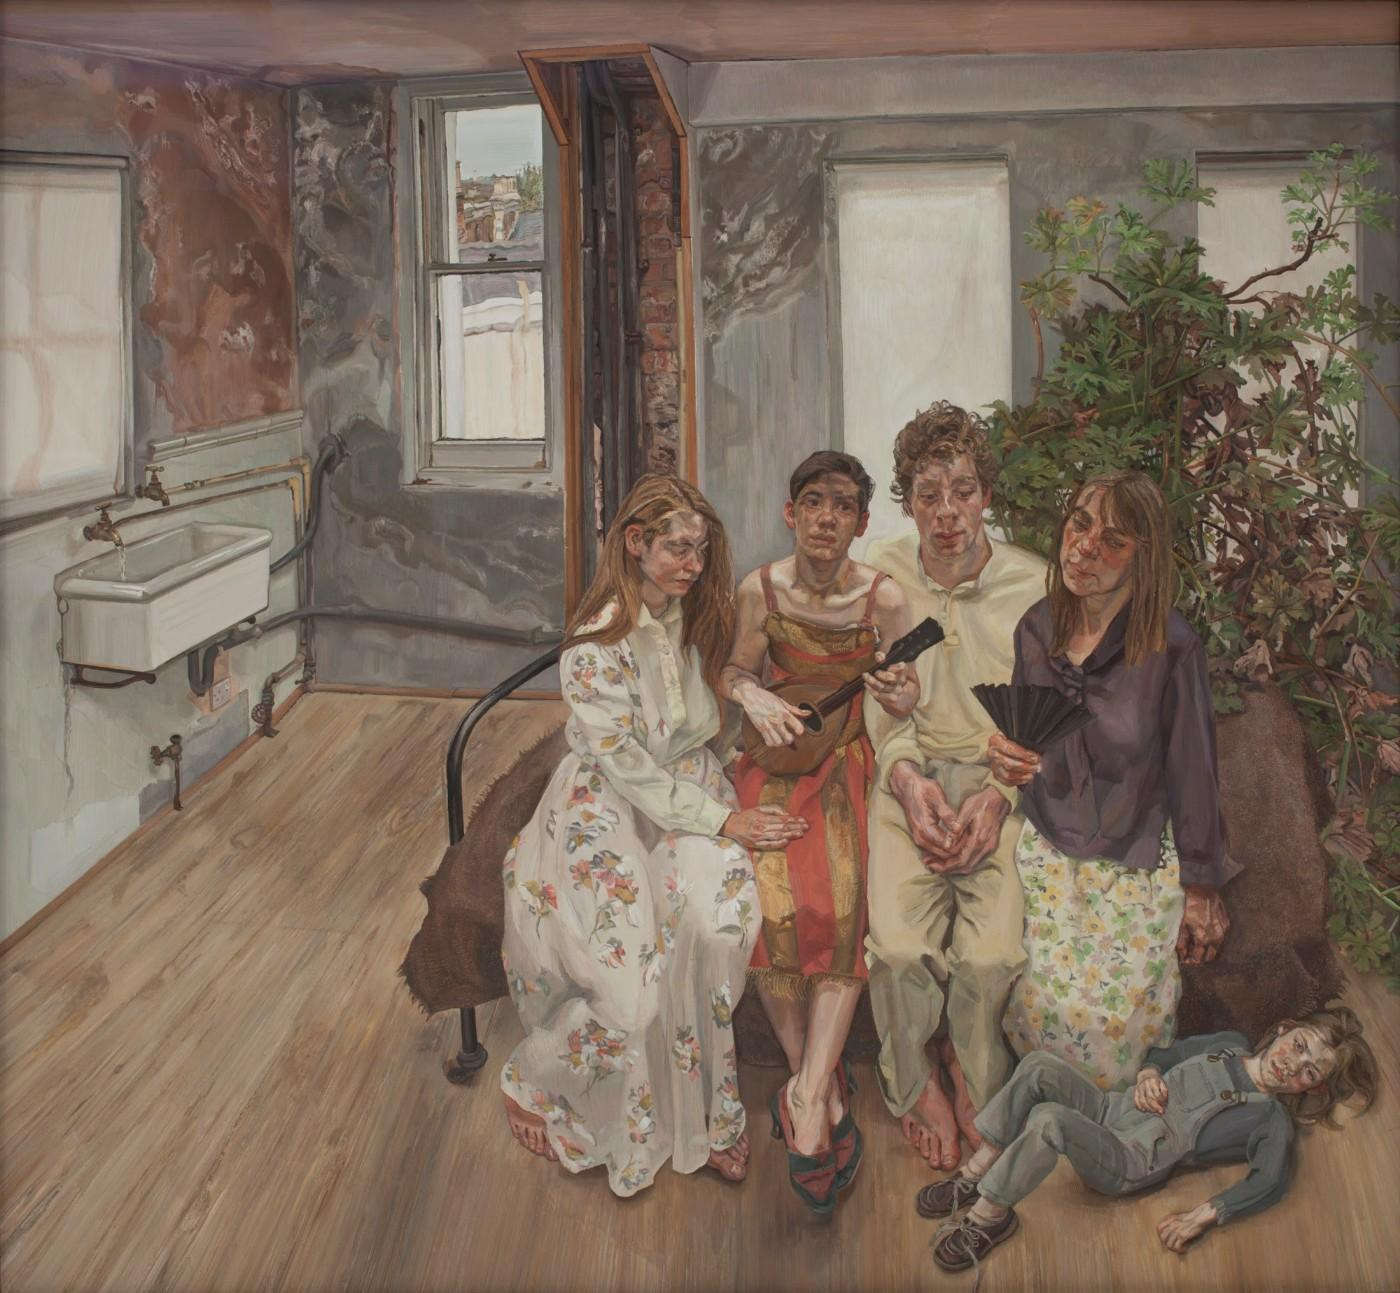 Lucian Freud, Large Interior, W11 (after Watteau), 1981-1983. Oil on canvas, 73 x 78 inches. Paul G. Allen Family Collection.